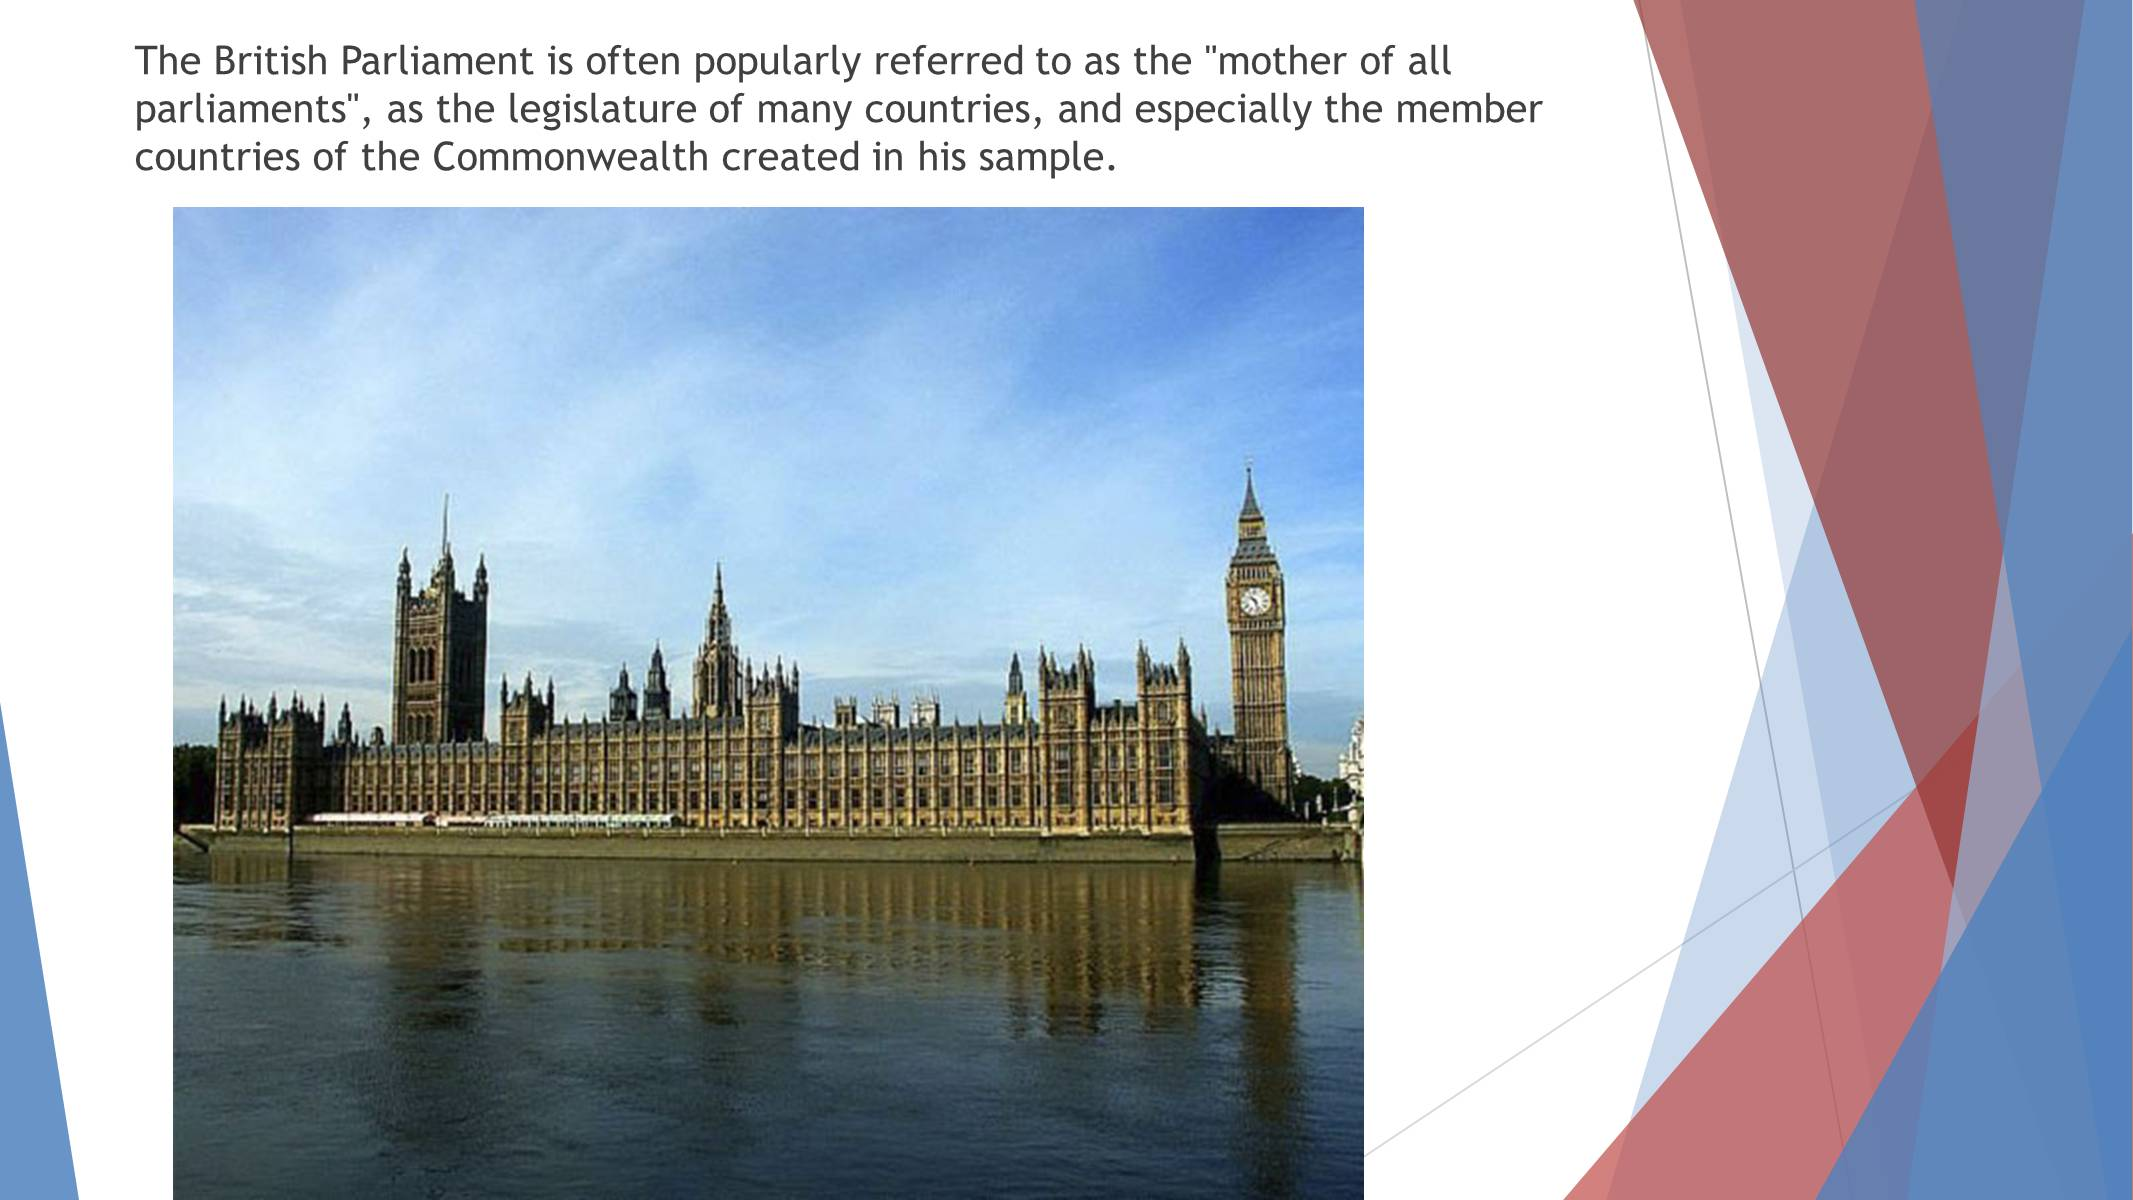 Презентація на тему «Parliament of the United Kingdom of Great Britain and Northern Ireland» - Слайд #2